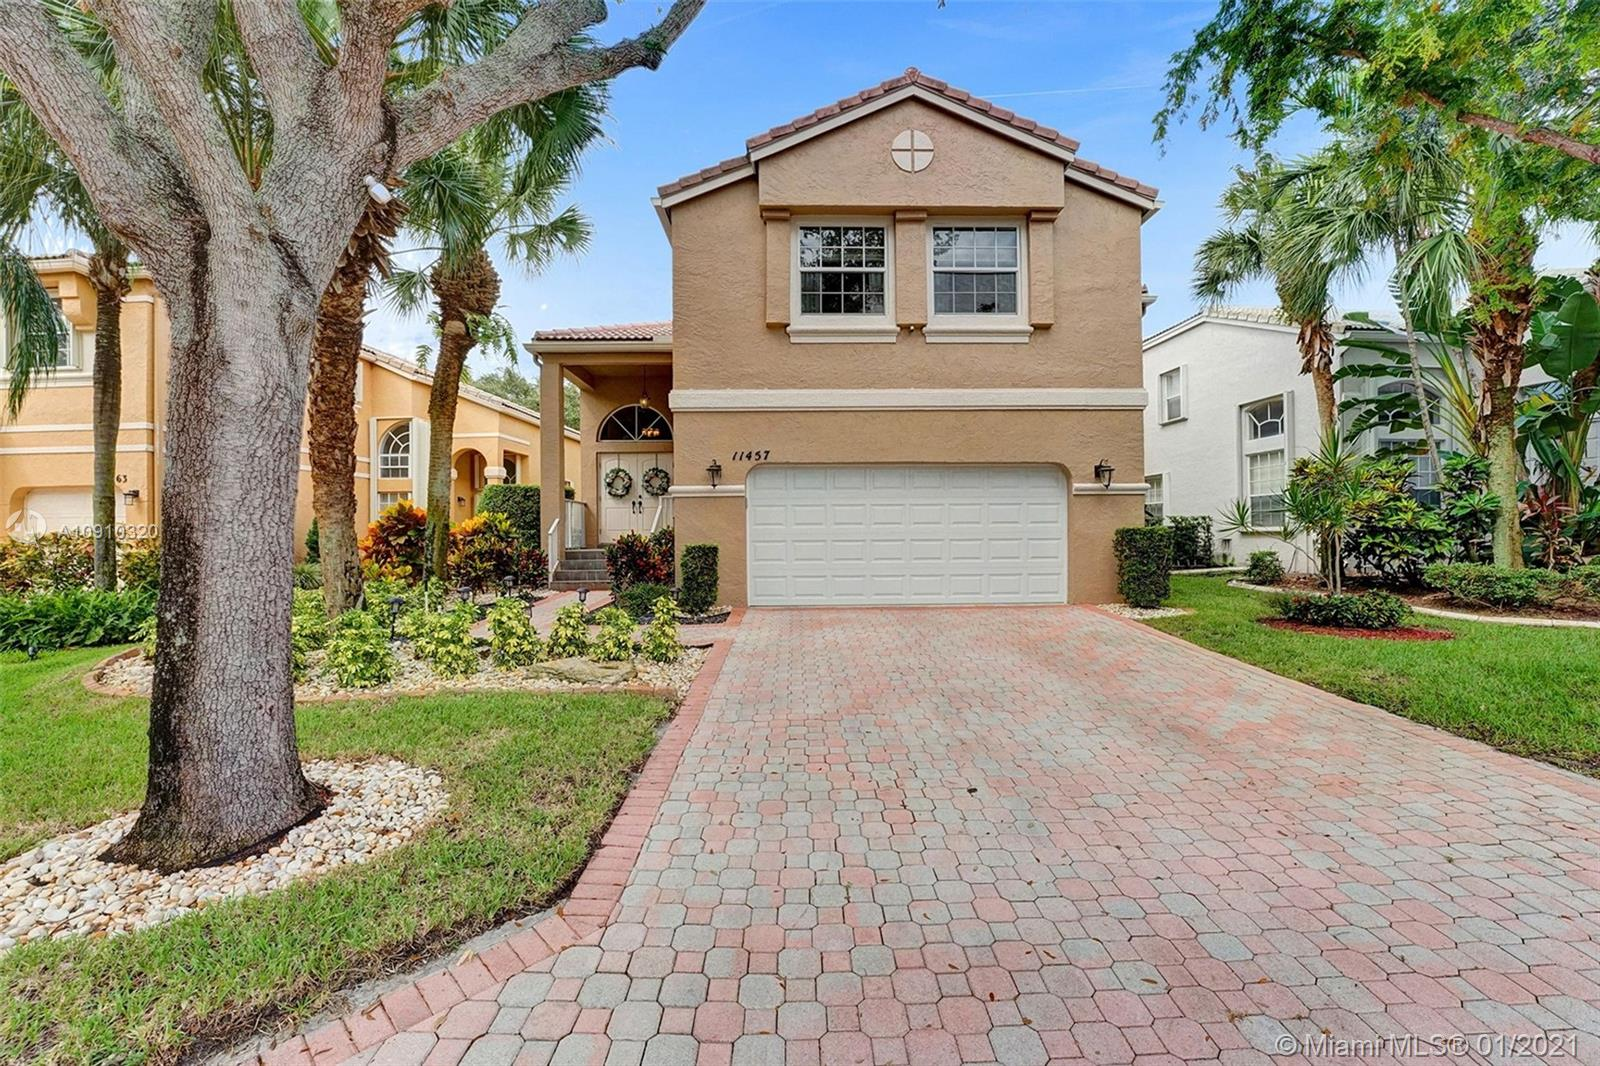 11457 NW 49th Dr, Coral Springs FL 33076